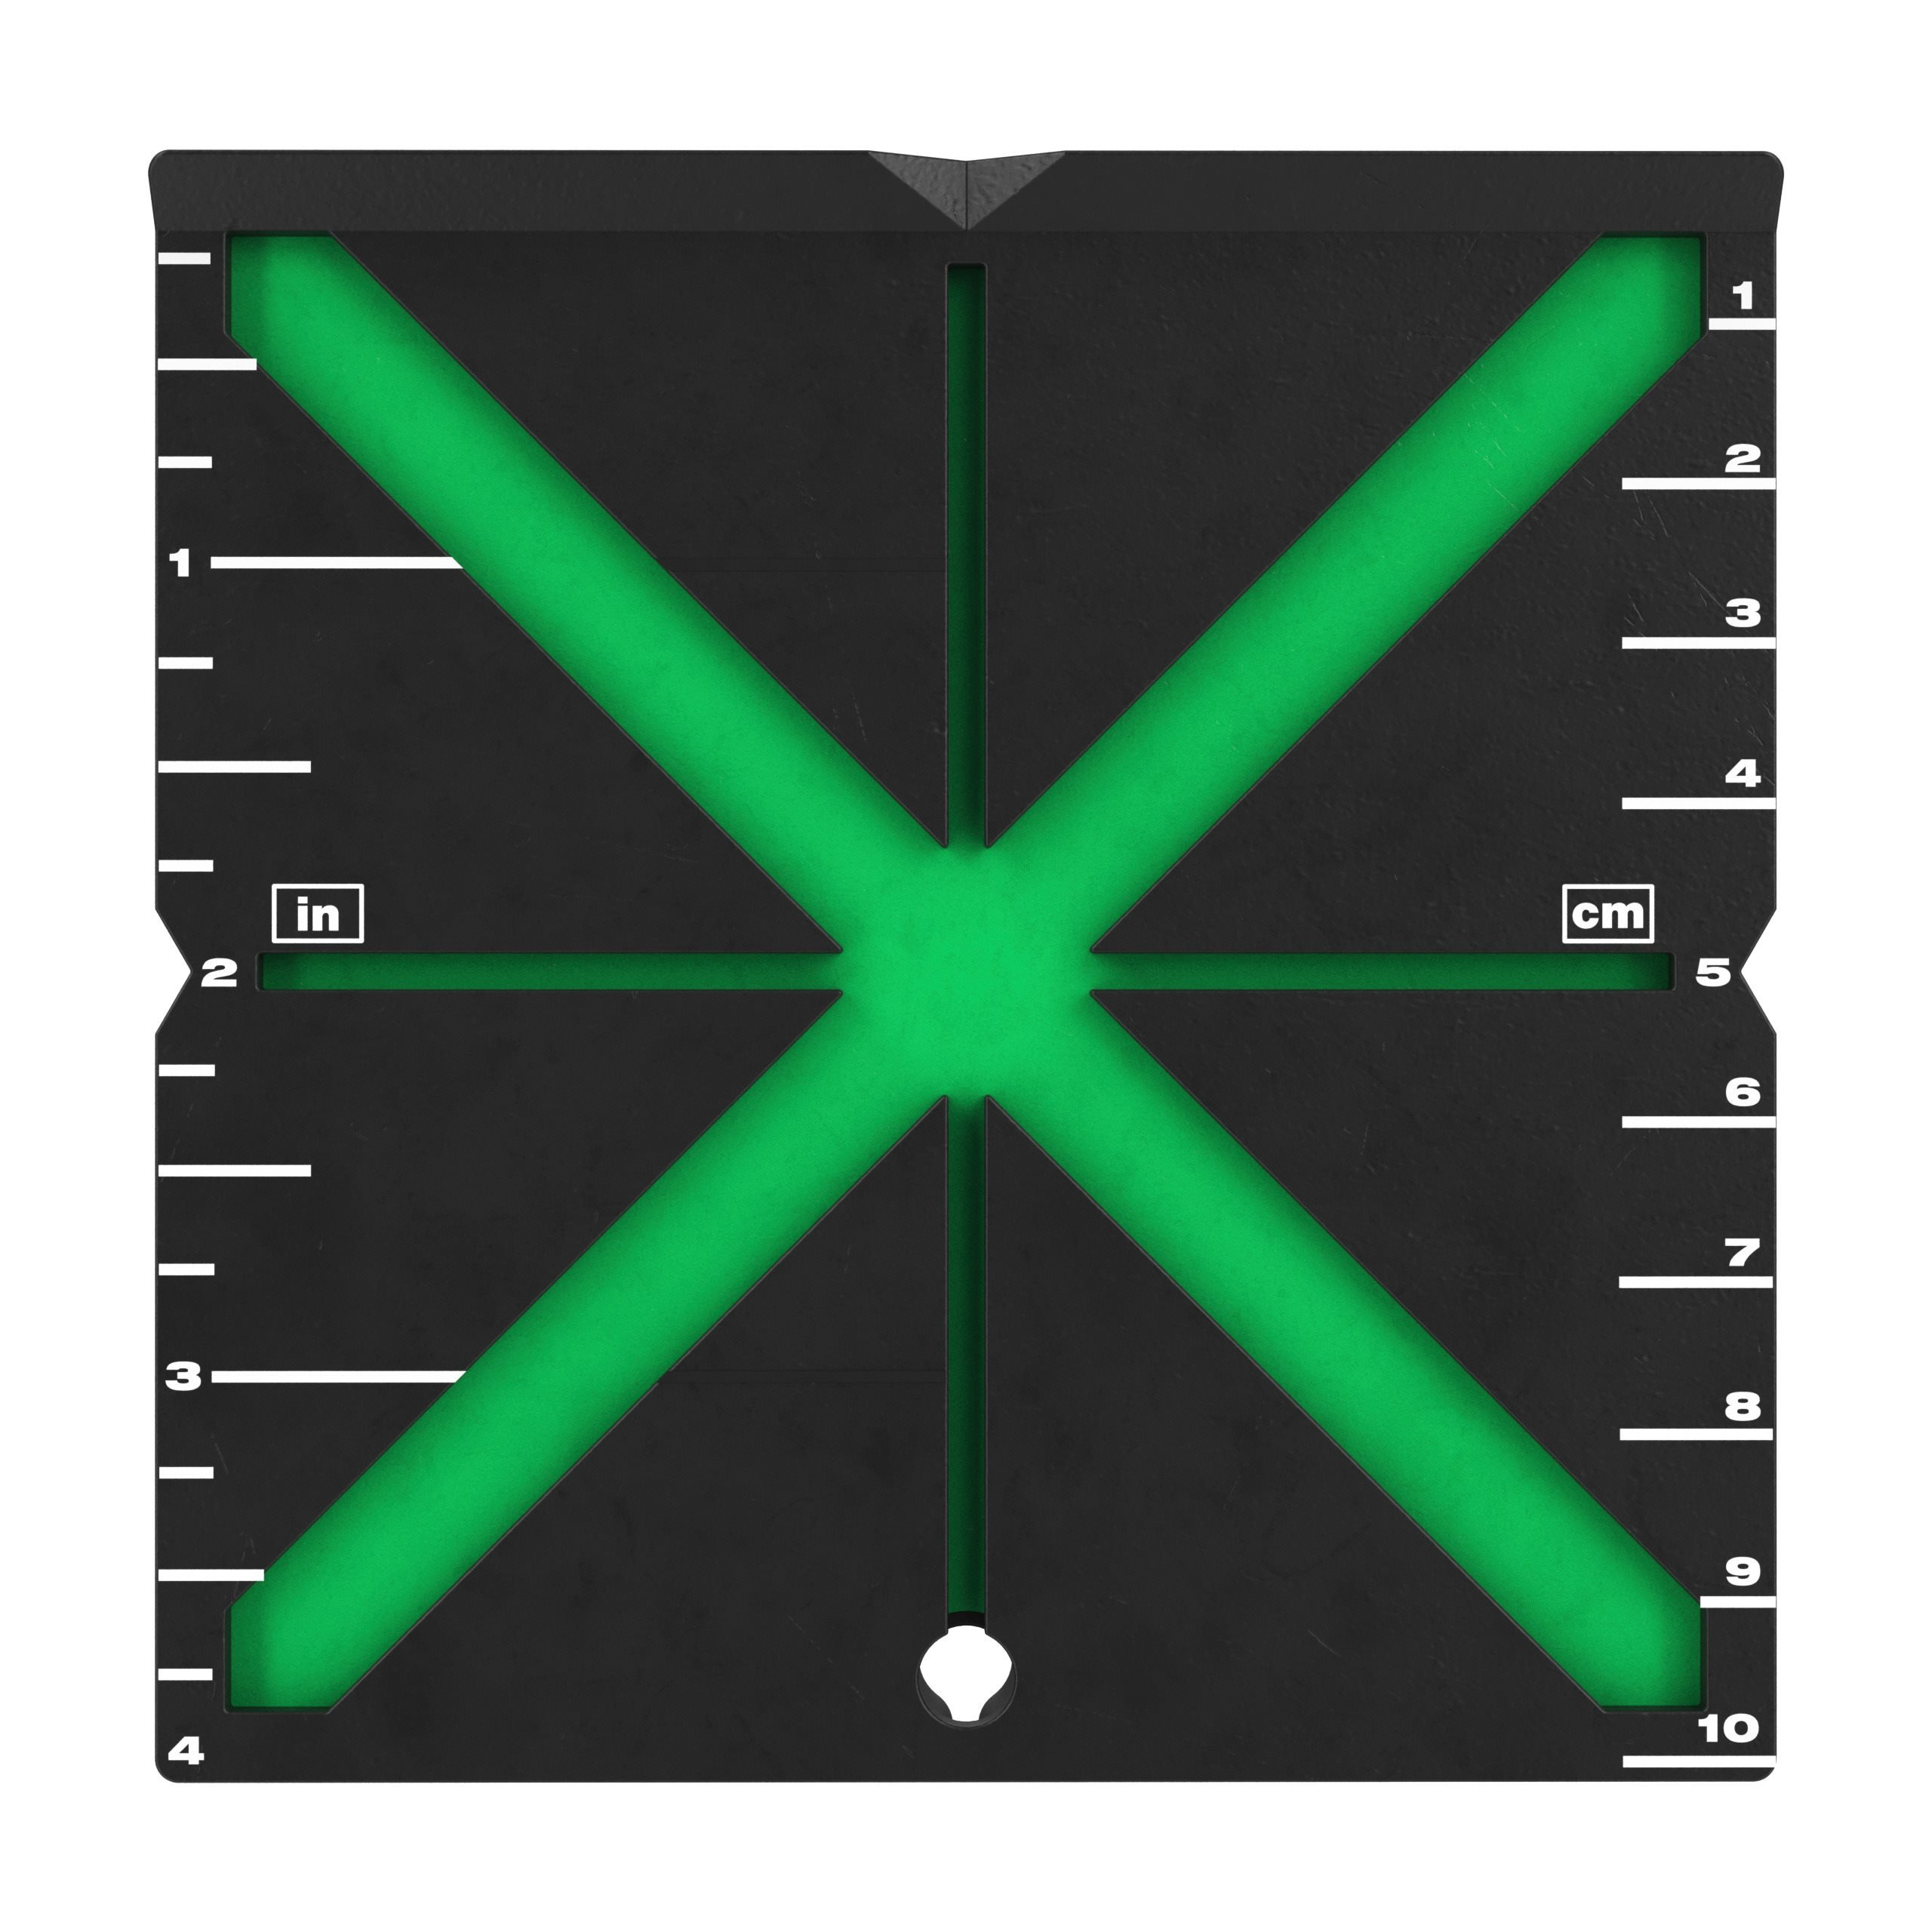 High visibility laser target plate